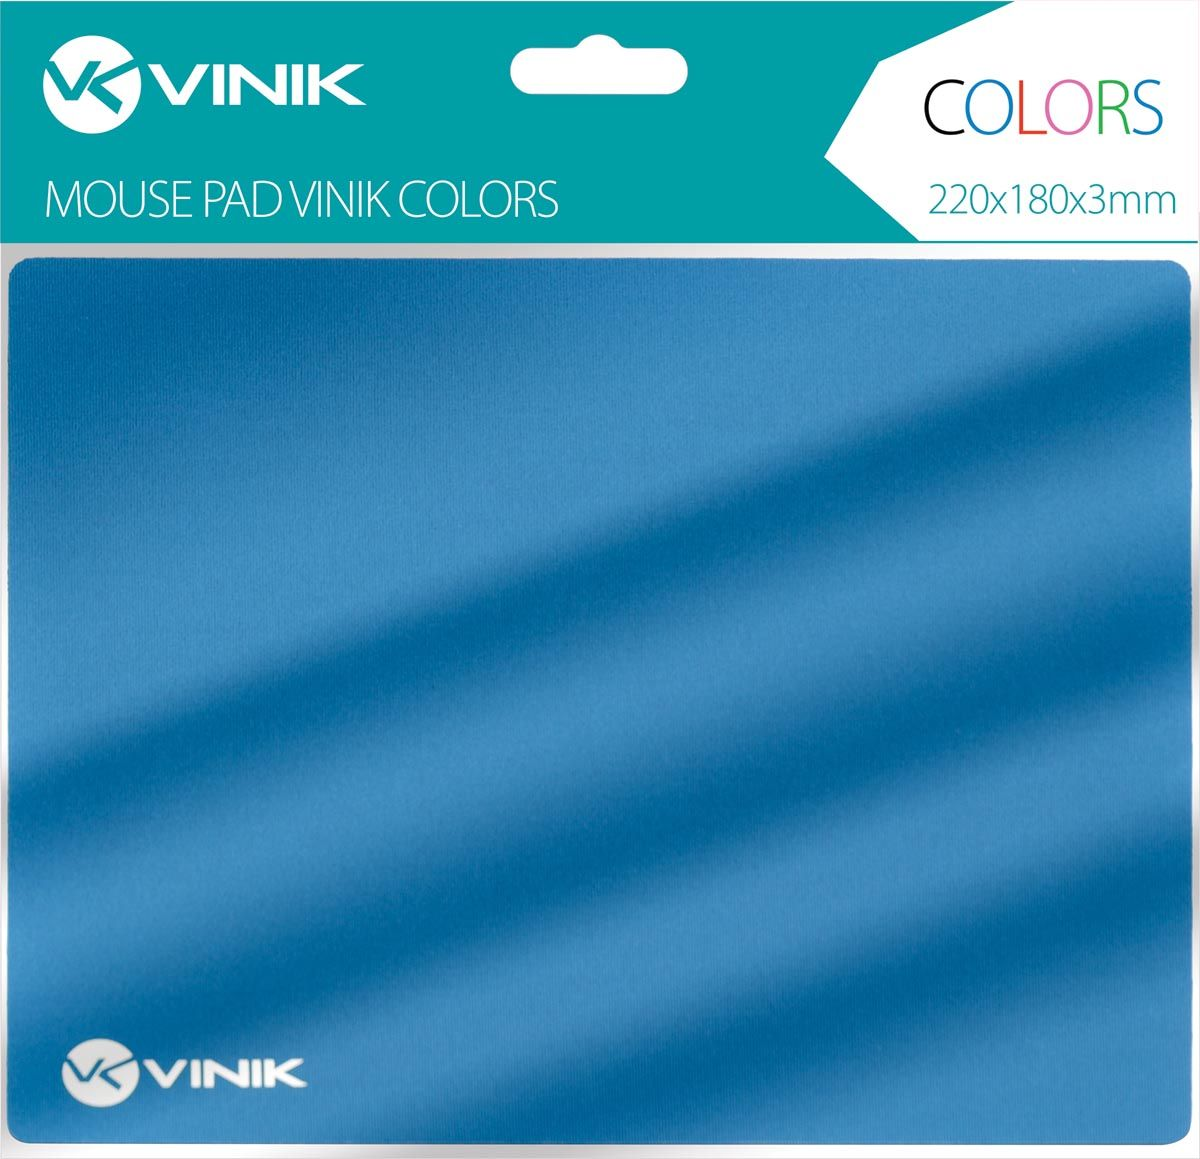 MOUSE PAD VINIK COLORS AZUL